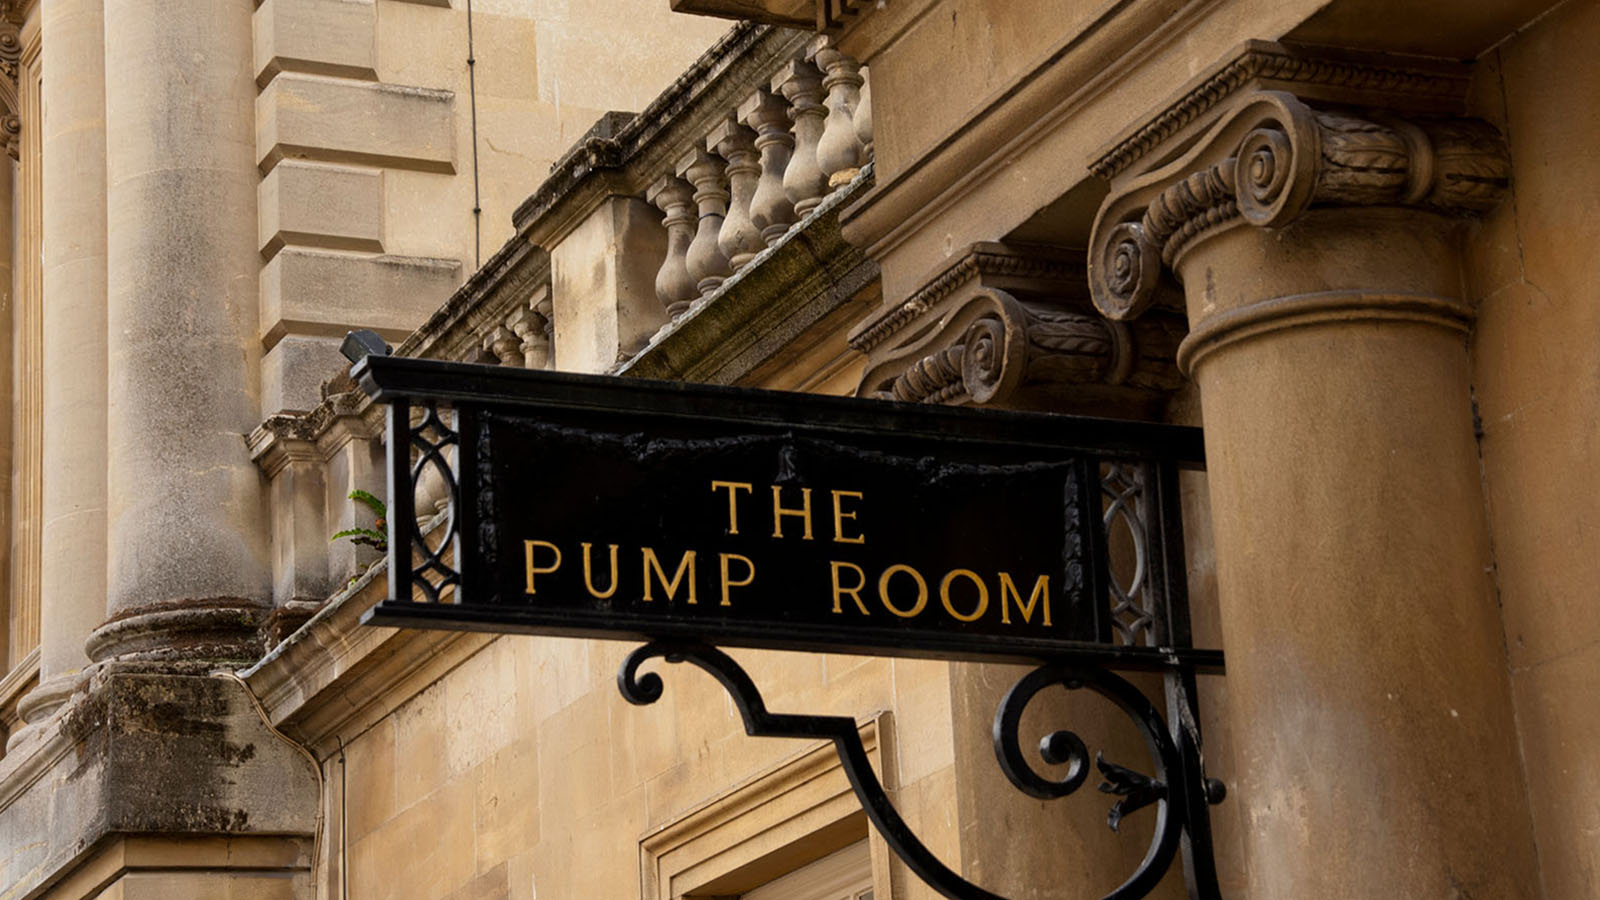 Pump Room sign Bath